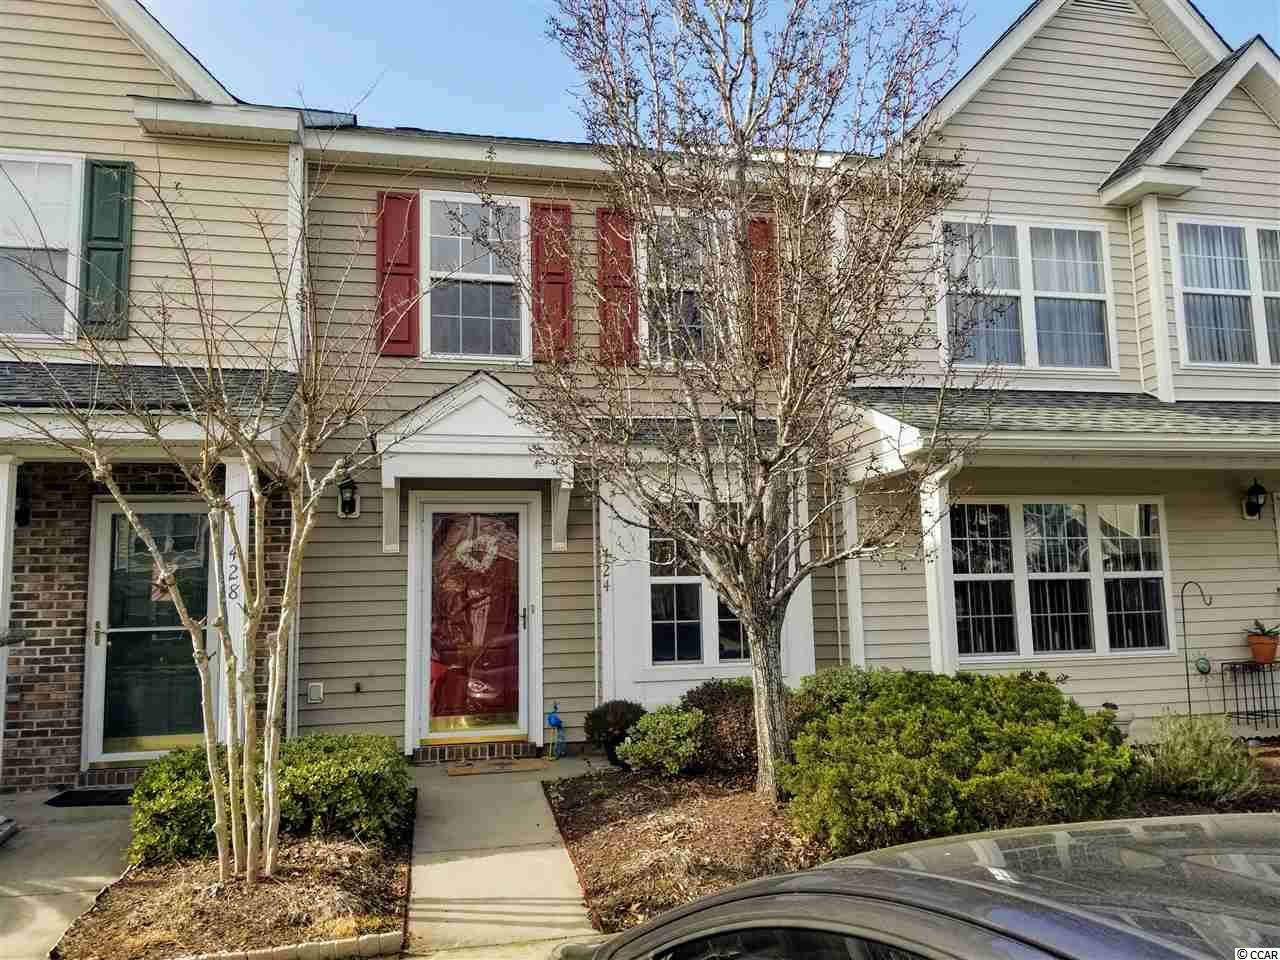 Townhouse MLS:1903578 WYNBROOKE TWNHM - Townhomes  424 Whinstone Dr. Murrells Inlet SC